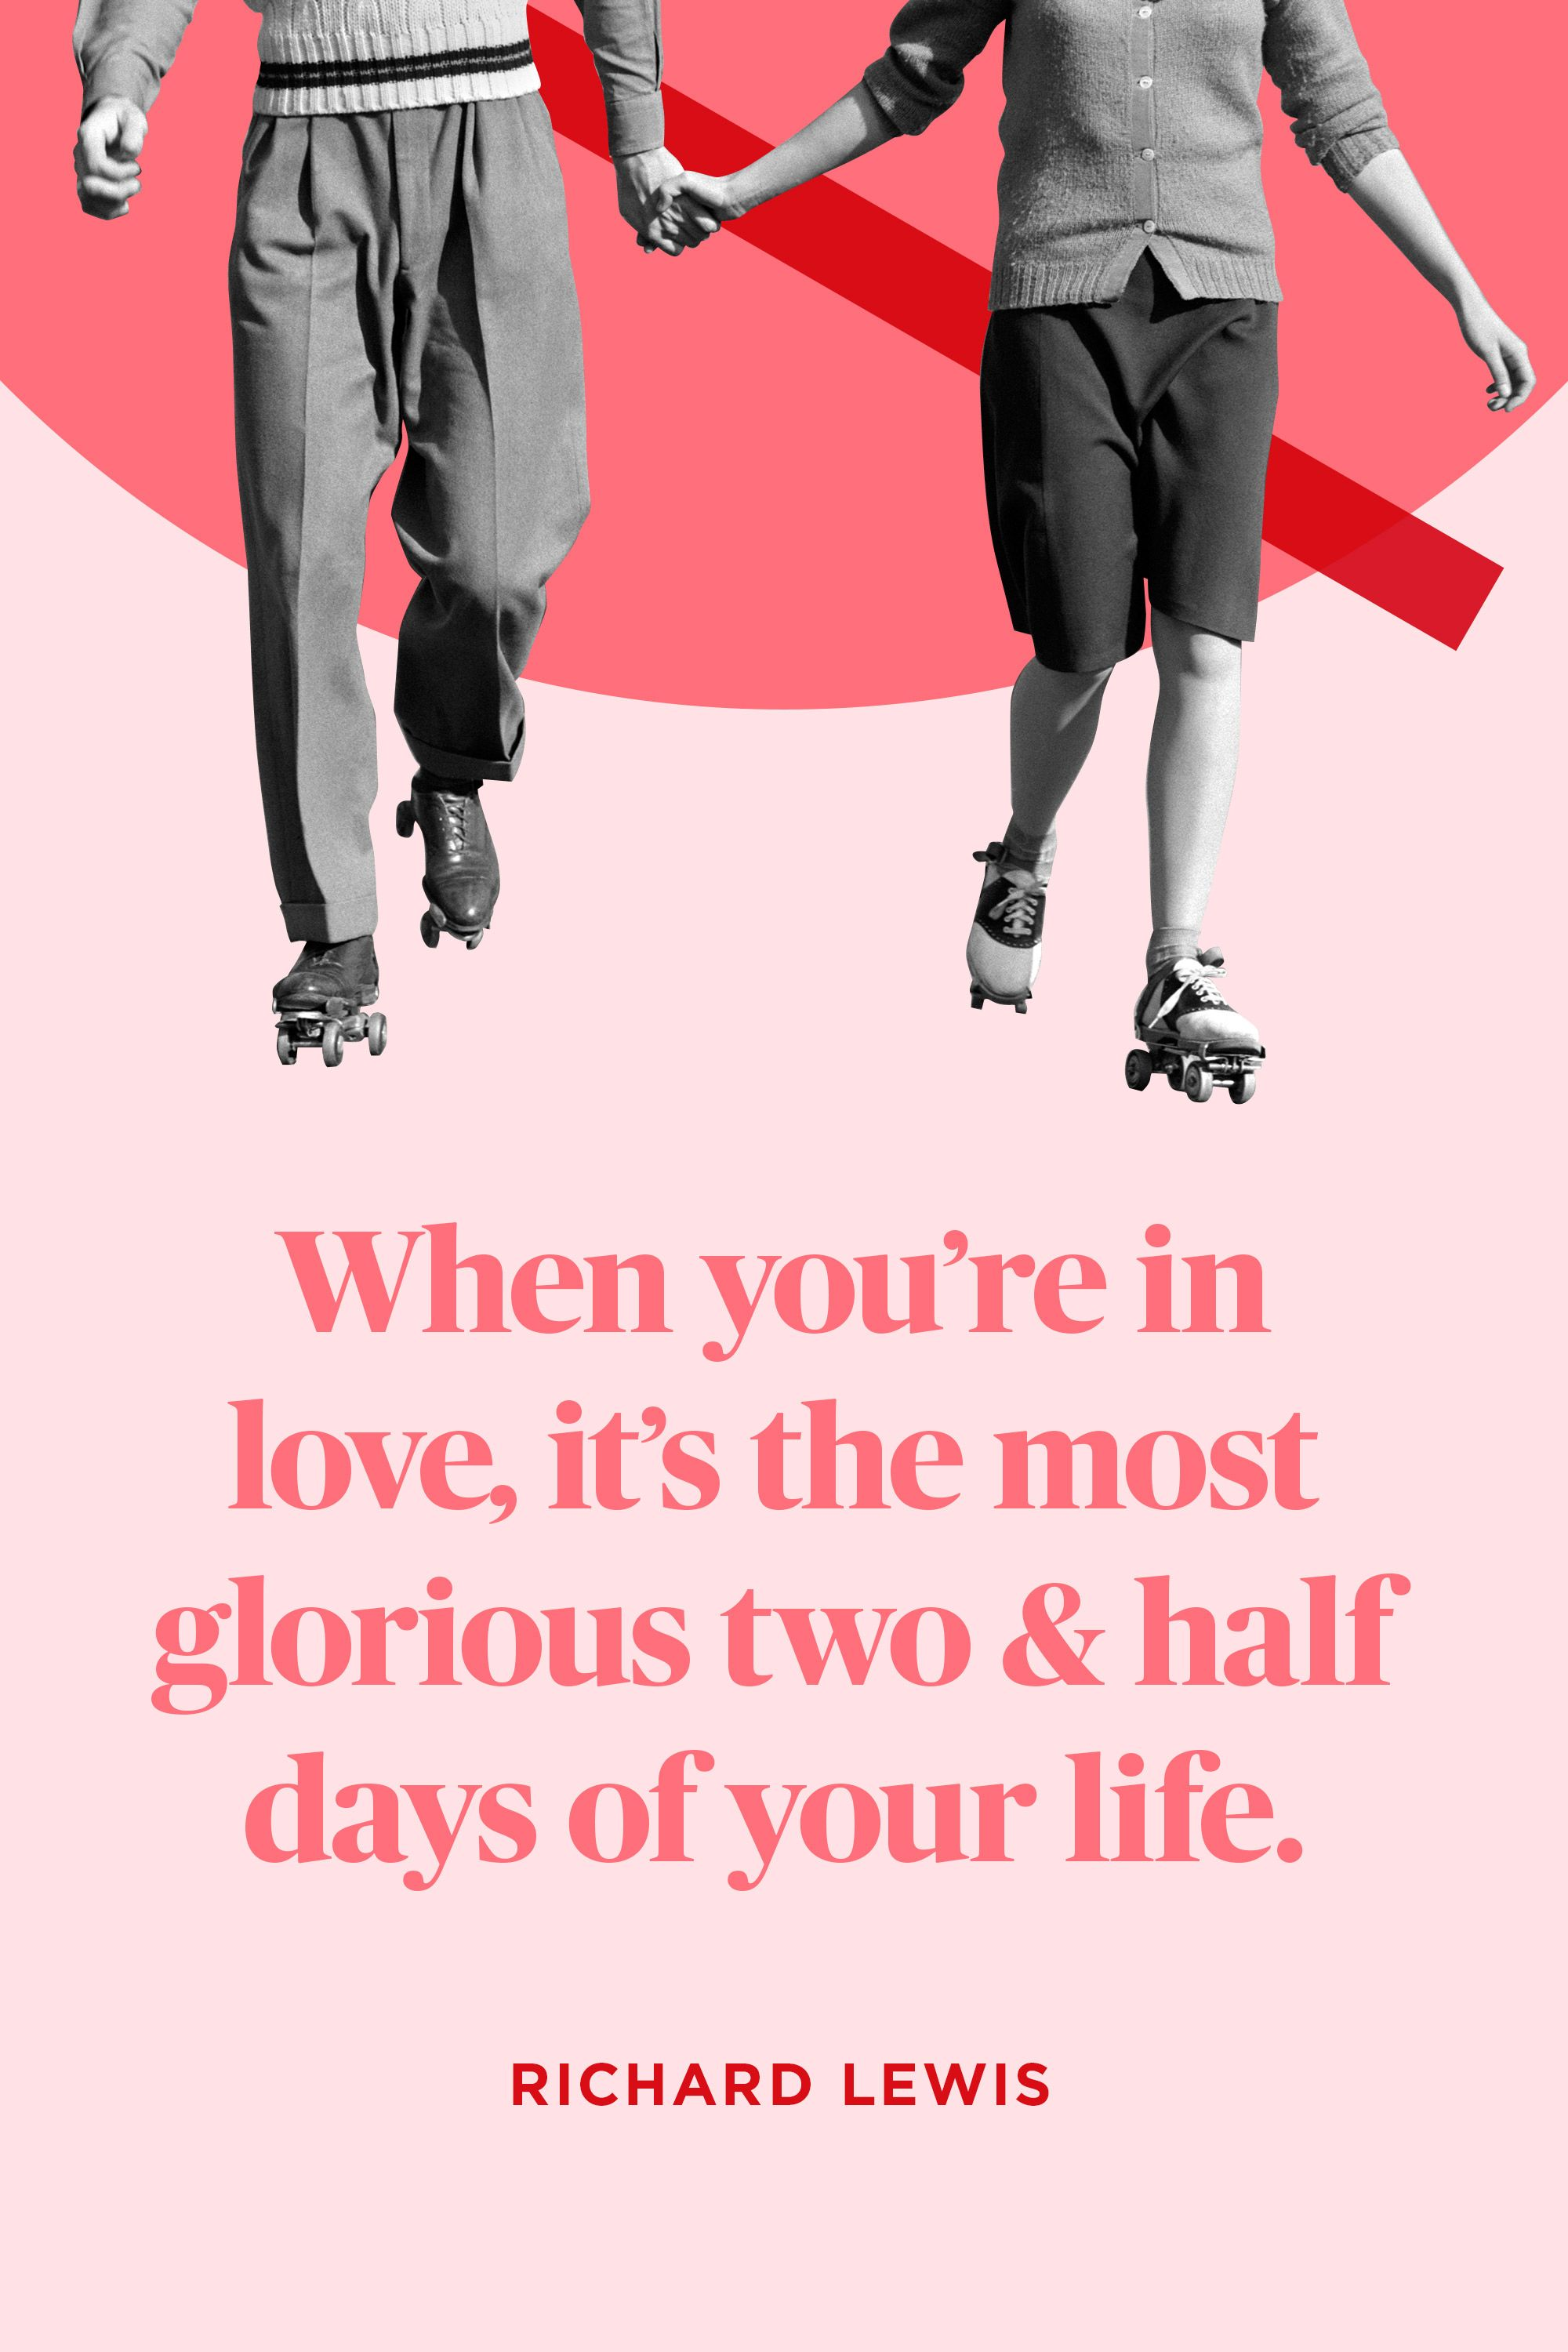 "<p>""When you're in love, it's the most glorious two and half days of your life.""</p>"